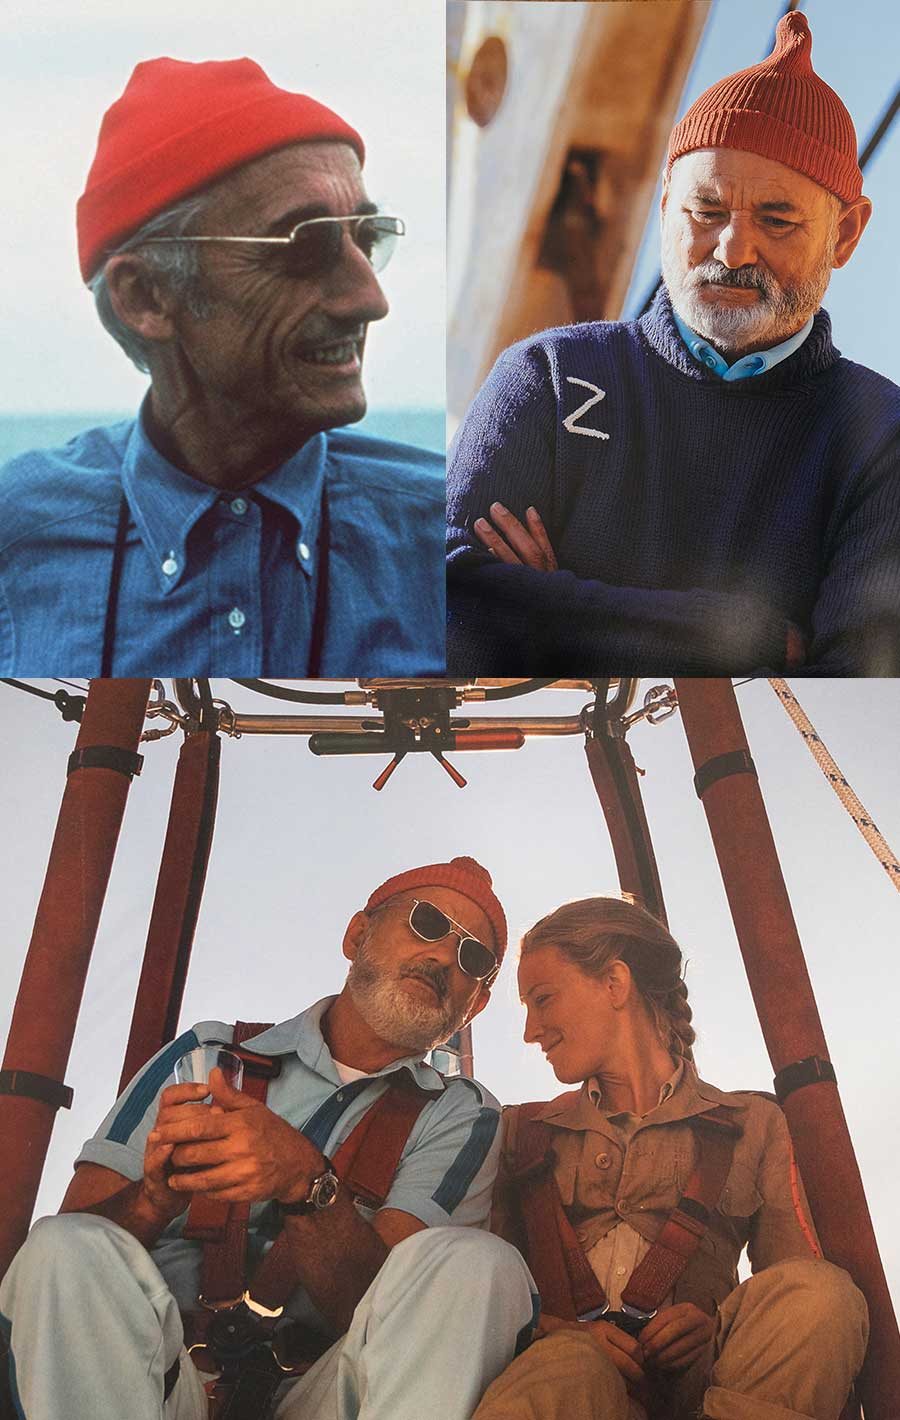 The Life Aquatic with Steve Zissou Menswear at the Movies  Primer